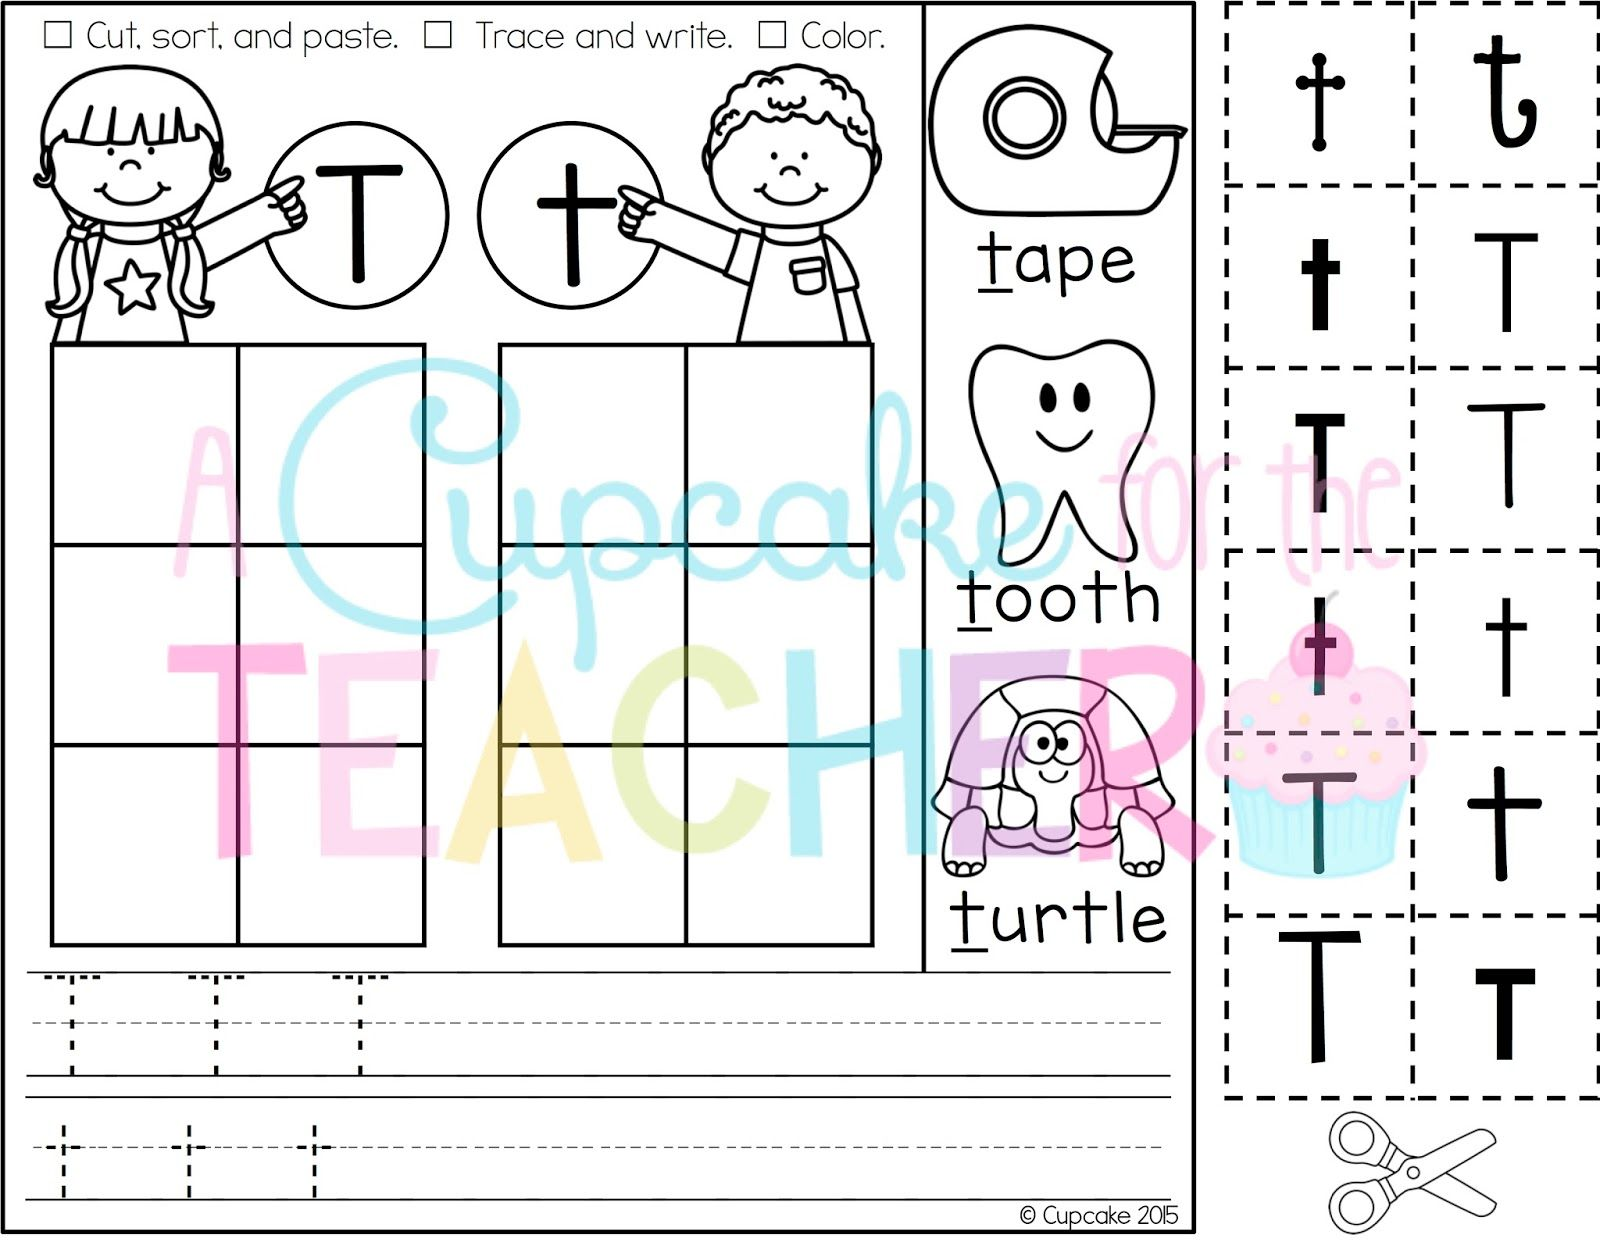 Practice Letter Identification And Formation With Letter